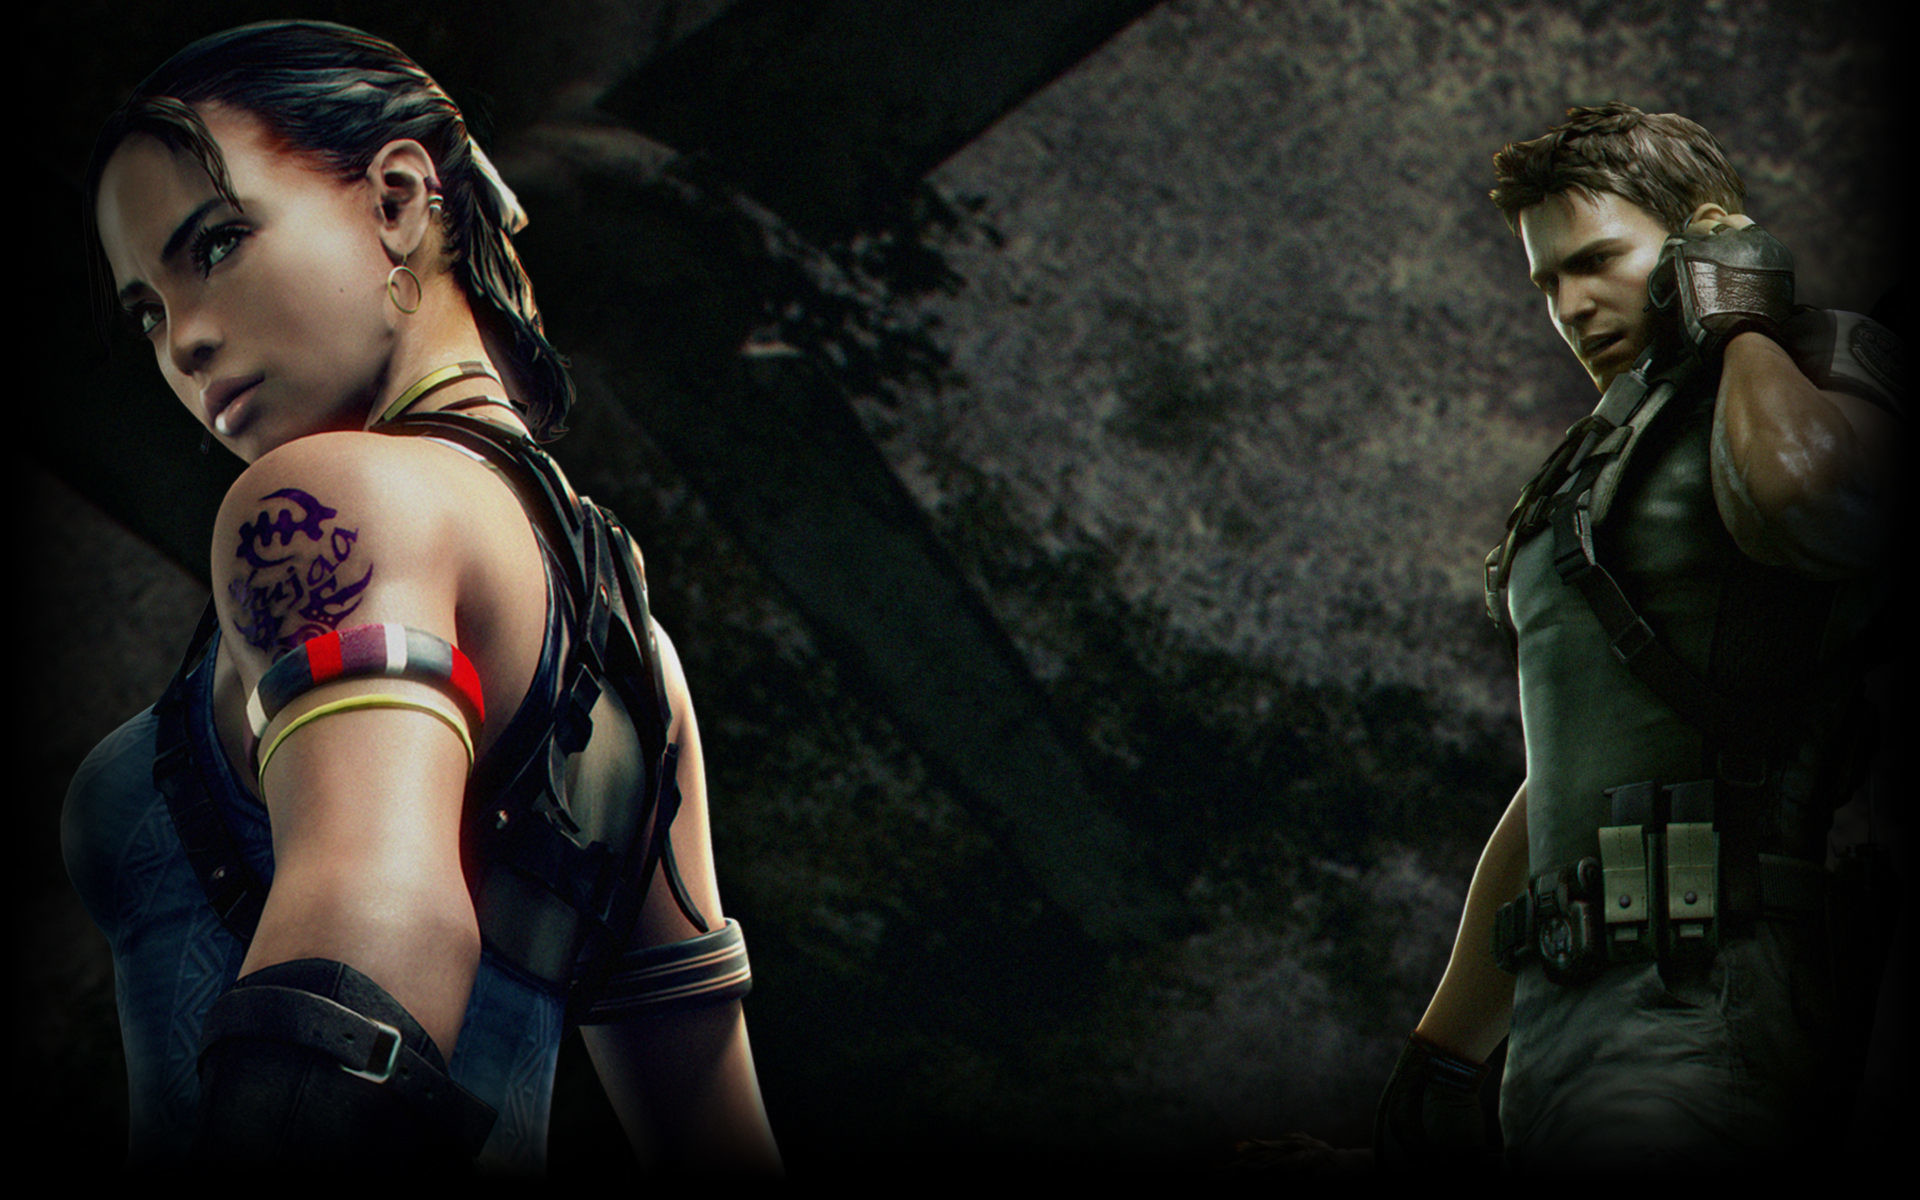 Res: 1920x1200, Resident Evil 5 images Chris and Sheva HD wallpaper and background photos